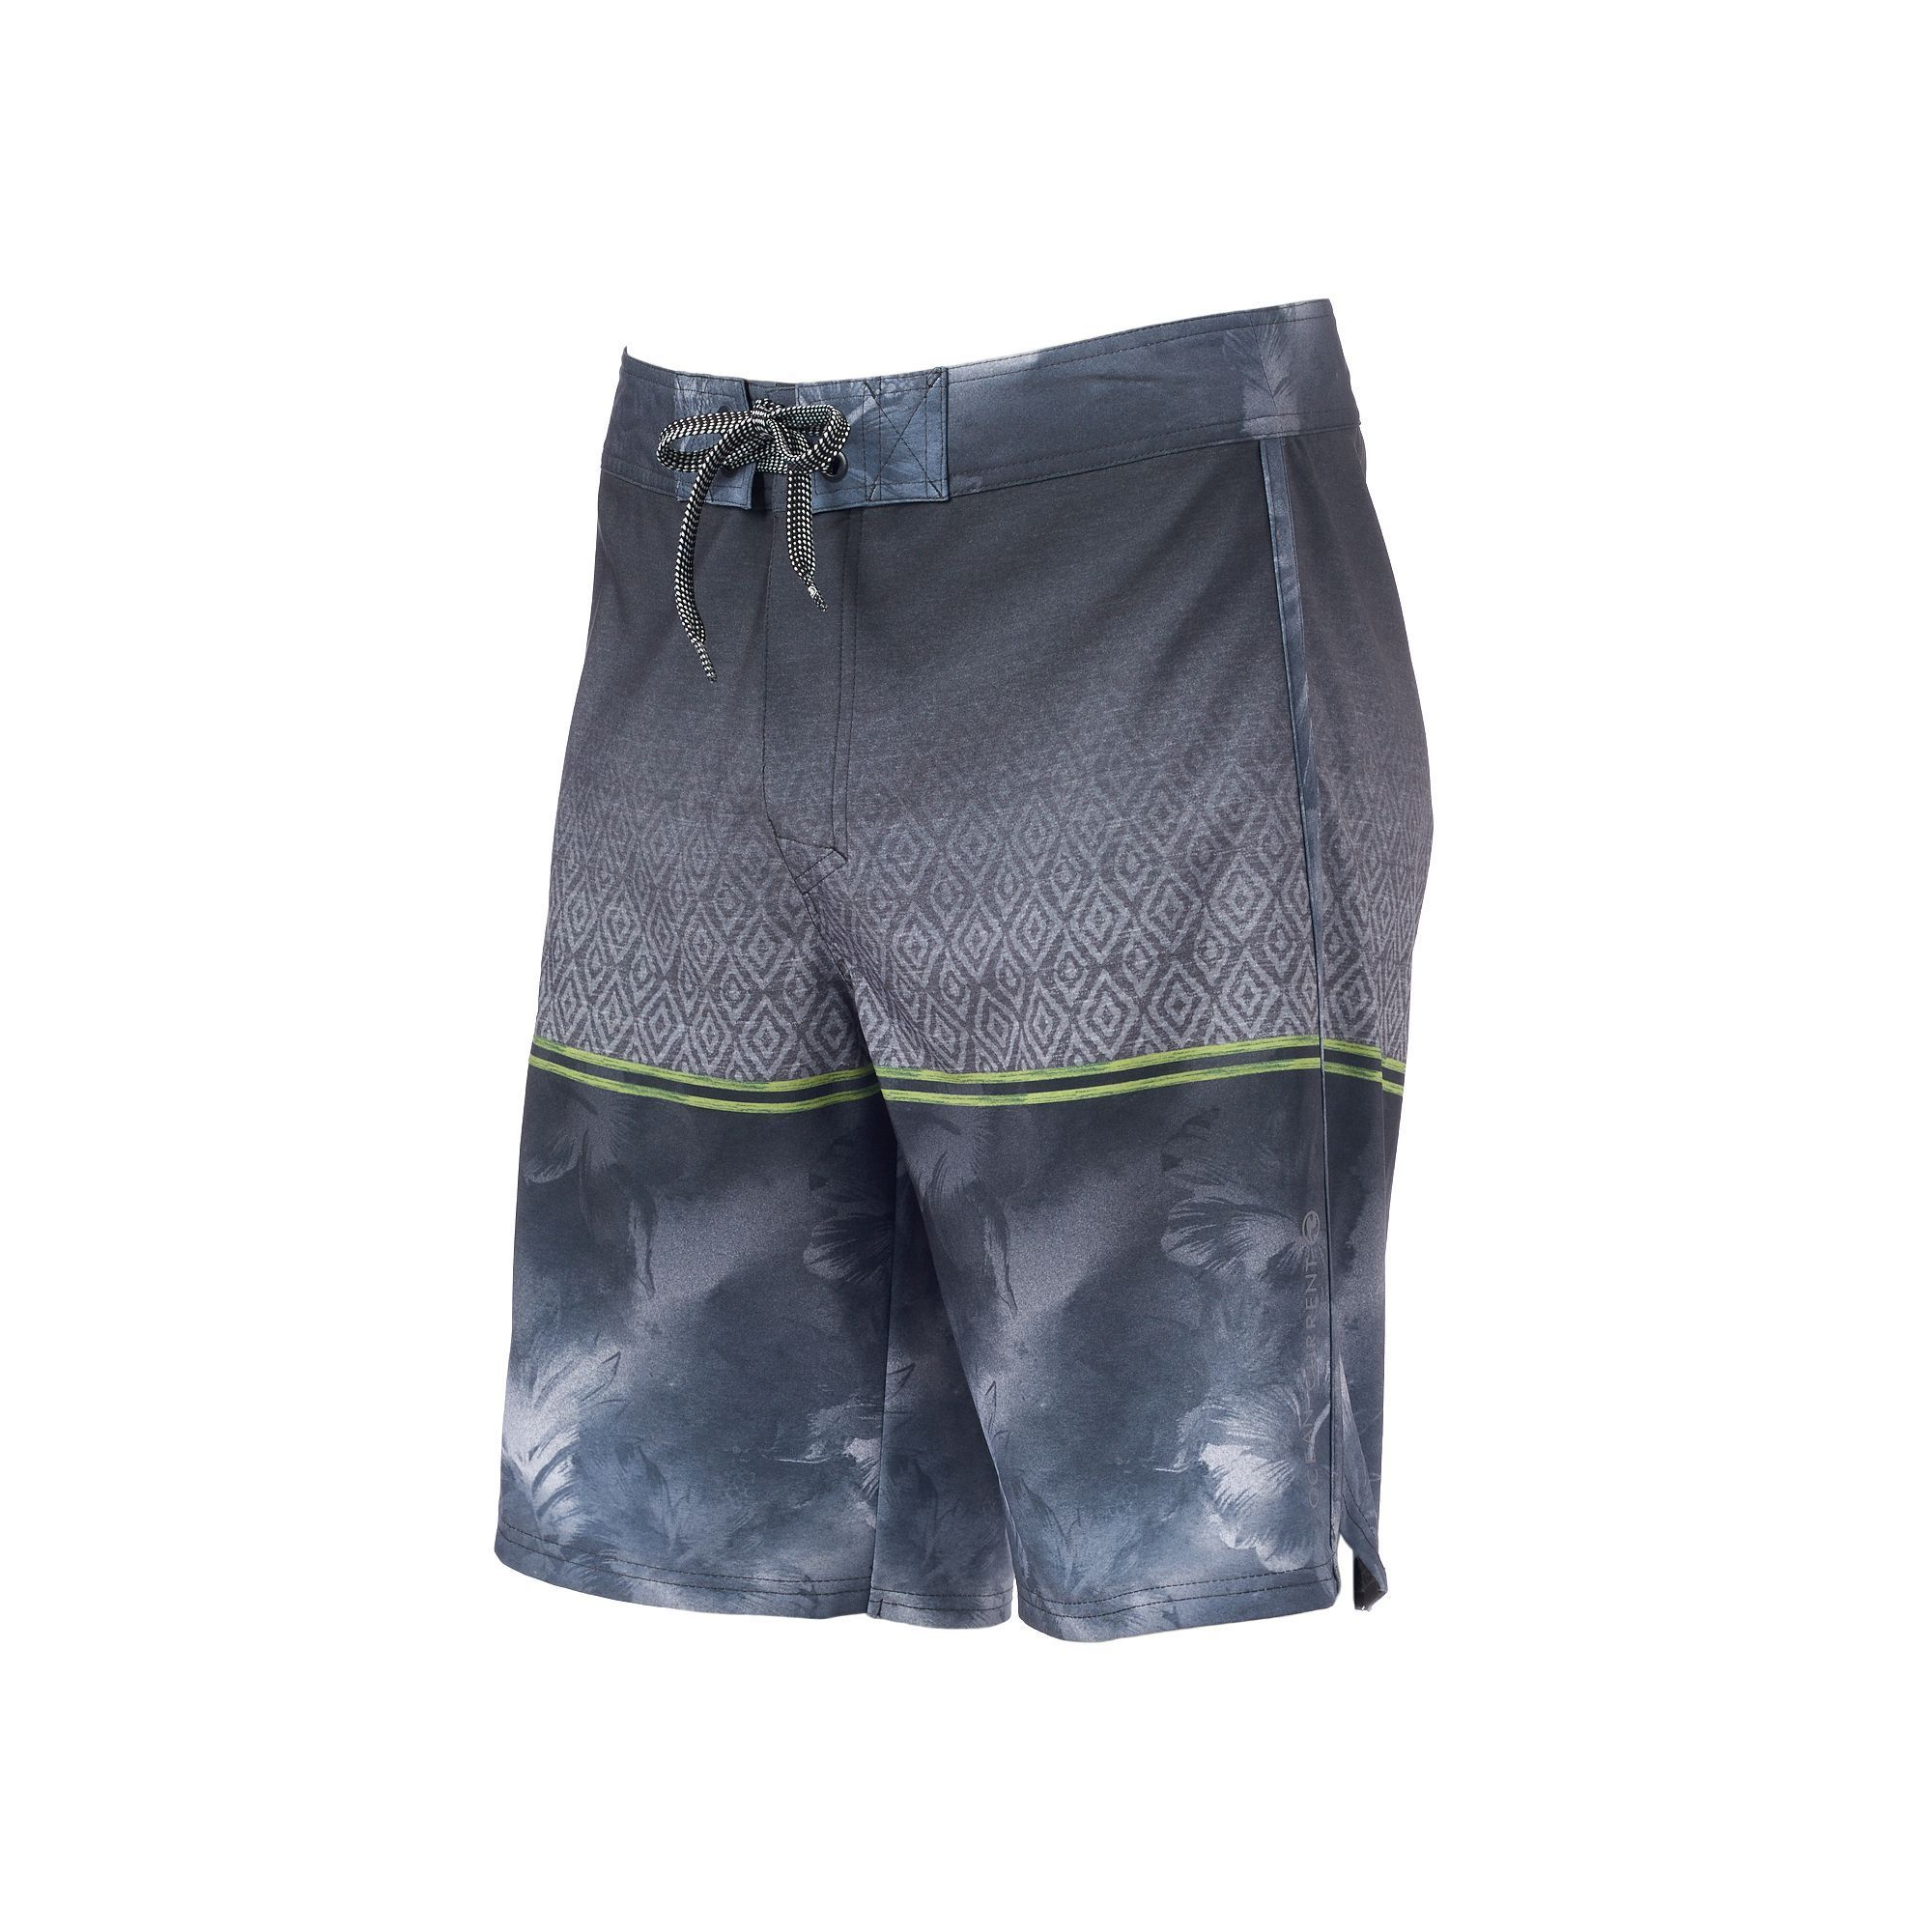 fc362220f1 Men's Ocean Current Kendrick Ombre Stretch Board Shorts, Size: 28, Med Grey